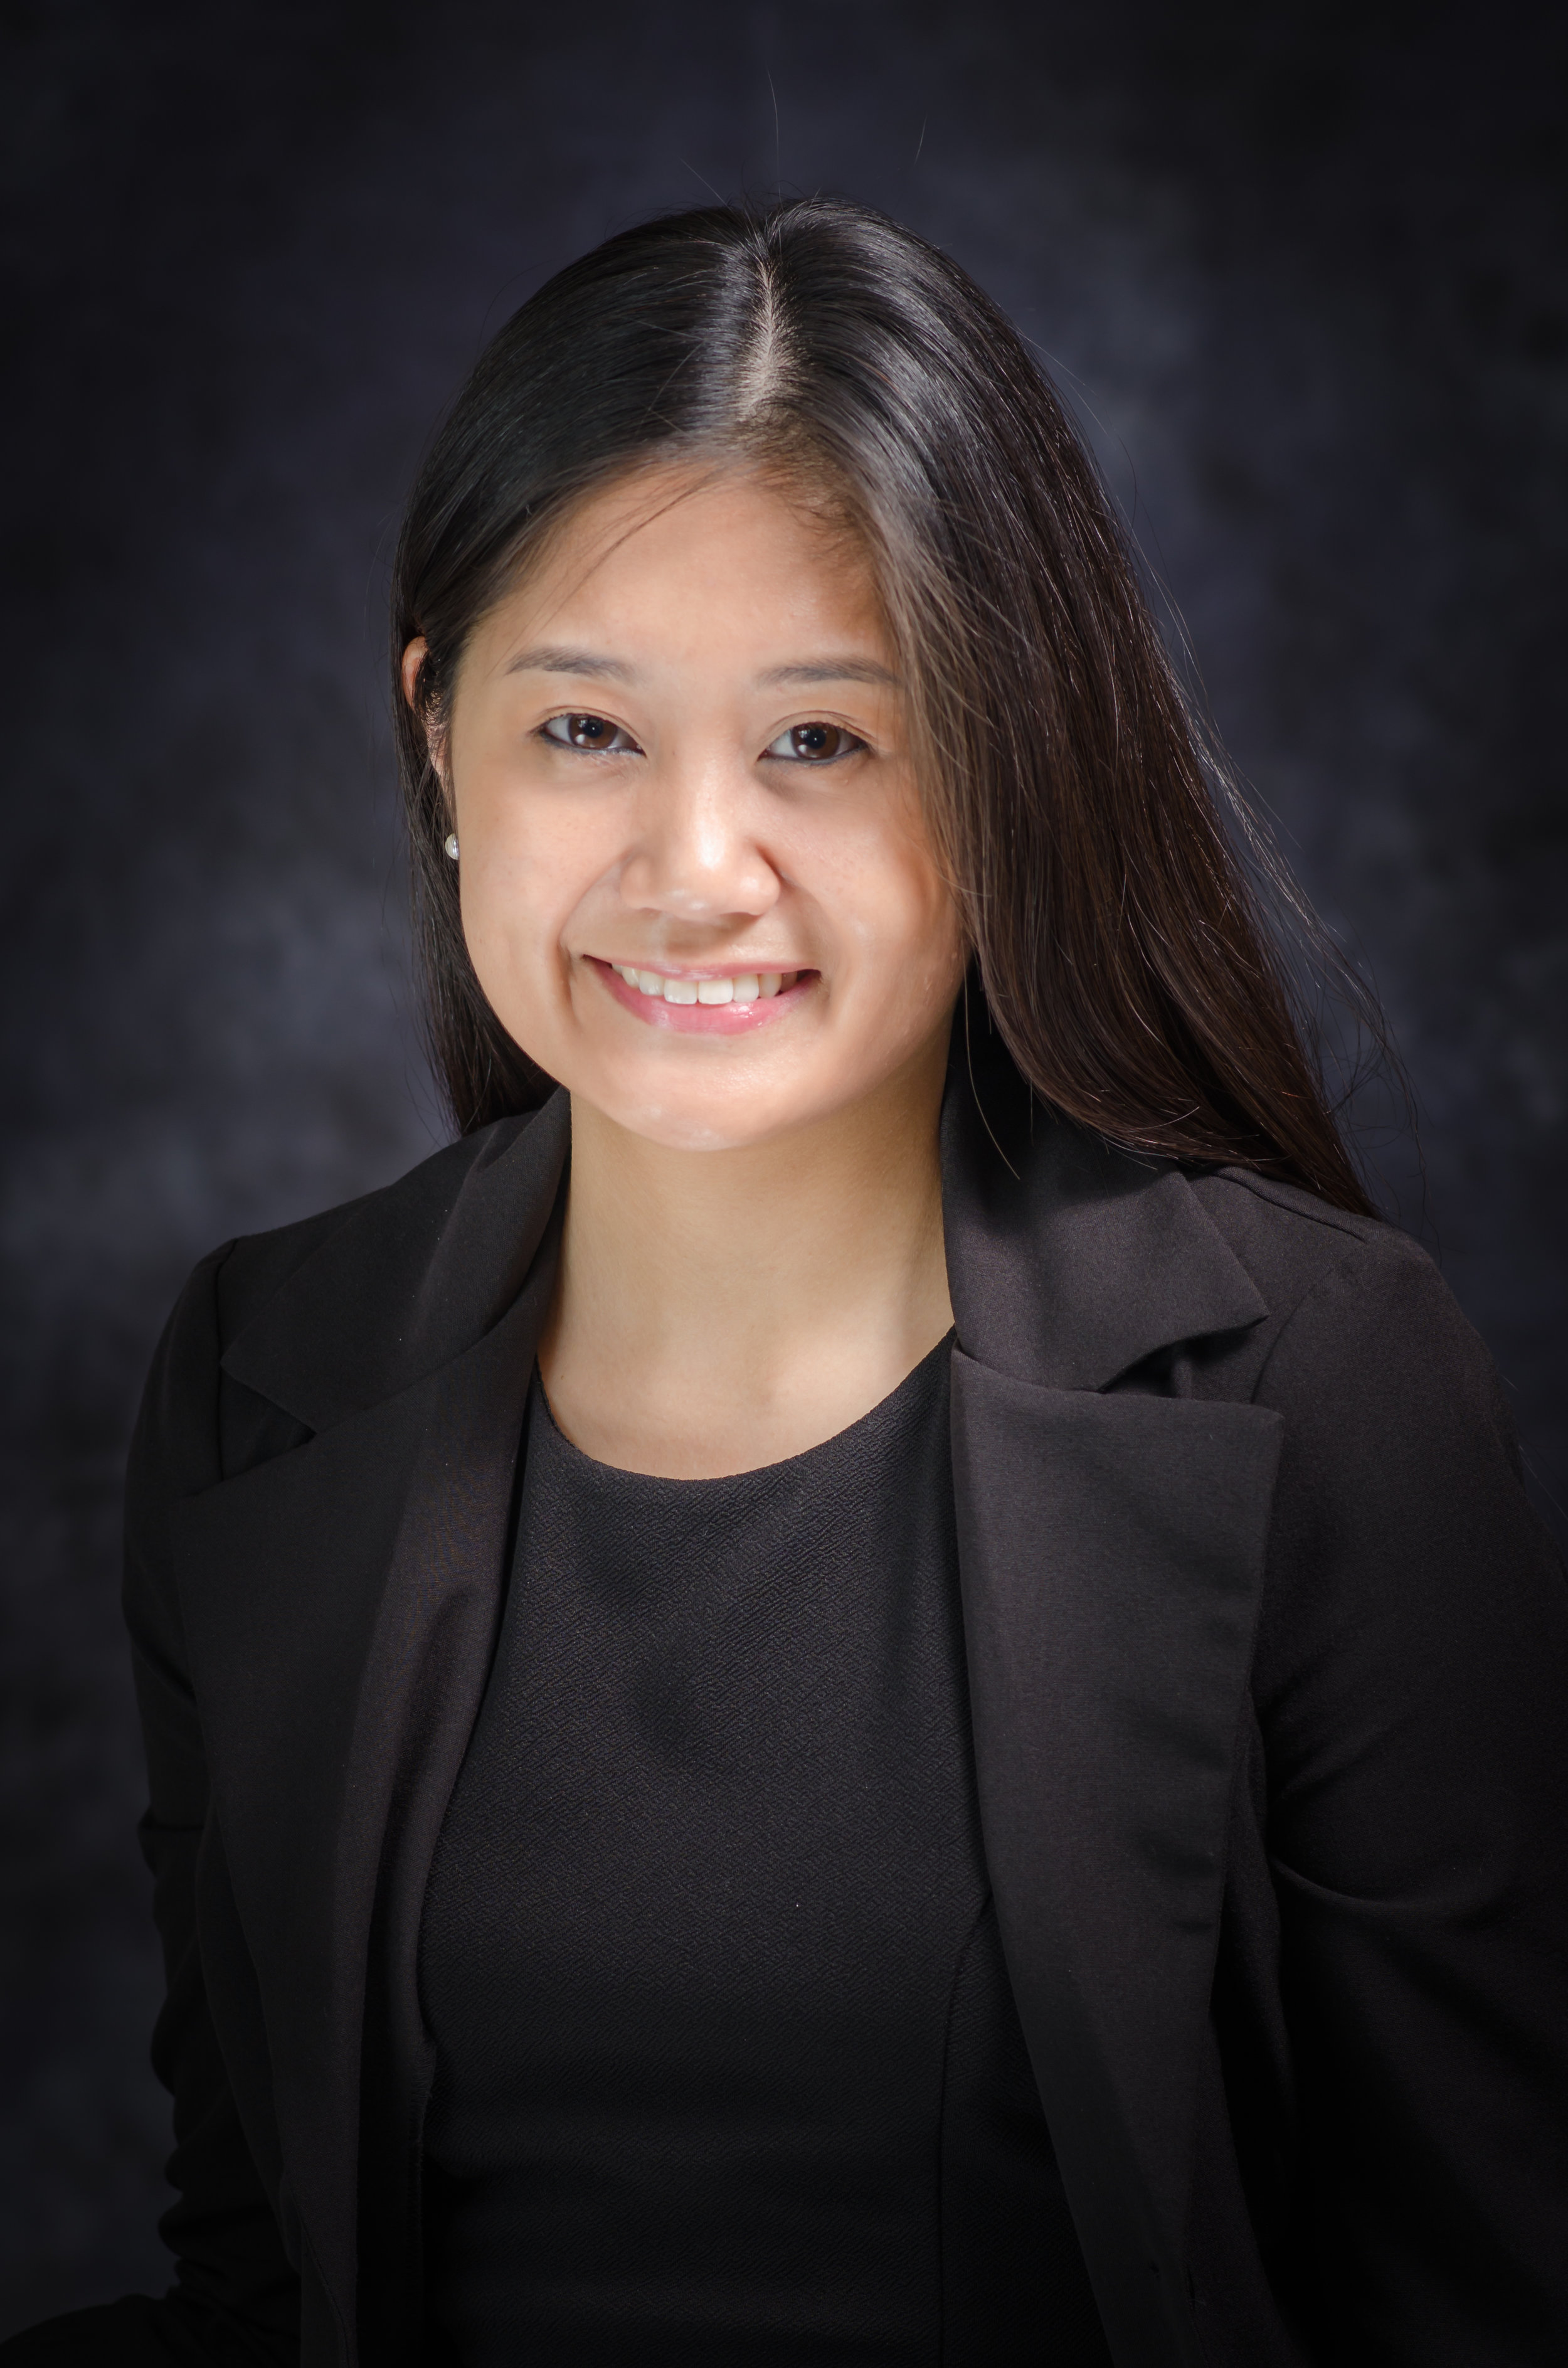 Denise Go, Vice President of Membership Development - Denise is from Merritt Island, Florida. She graduated from the University of Florida with degrees in English and Biology in 2014. She attended medical school from 2014 to 2017 before pursuing different passions at Duke Law. Denise enjoys writing poetry on Asian American and gender issues, eating desserts, and spending time with her friends and family.Other Engagements: Health Law Society (Treasurer)1L Summer: Center for HIV Law and Policy - New York, NY